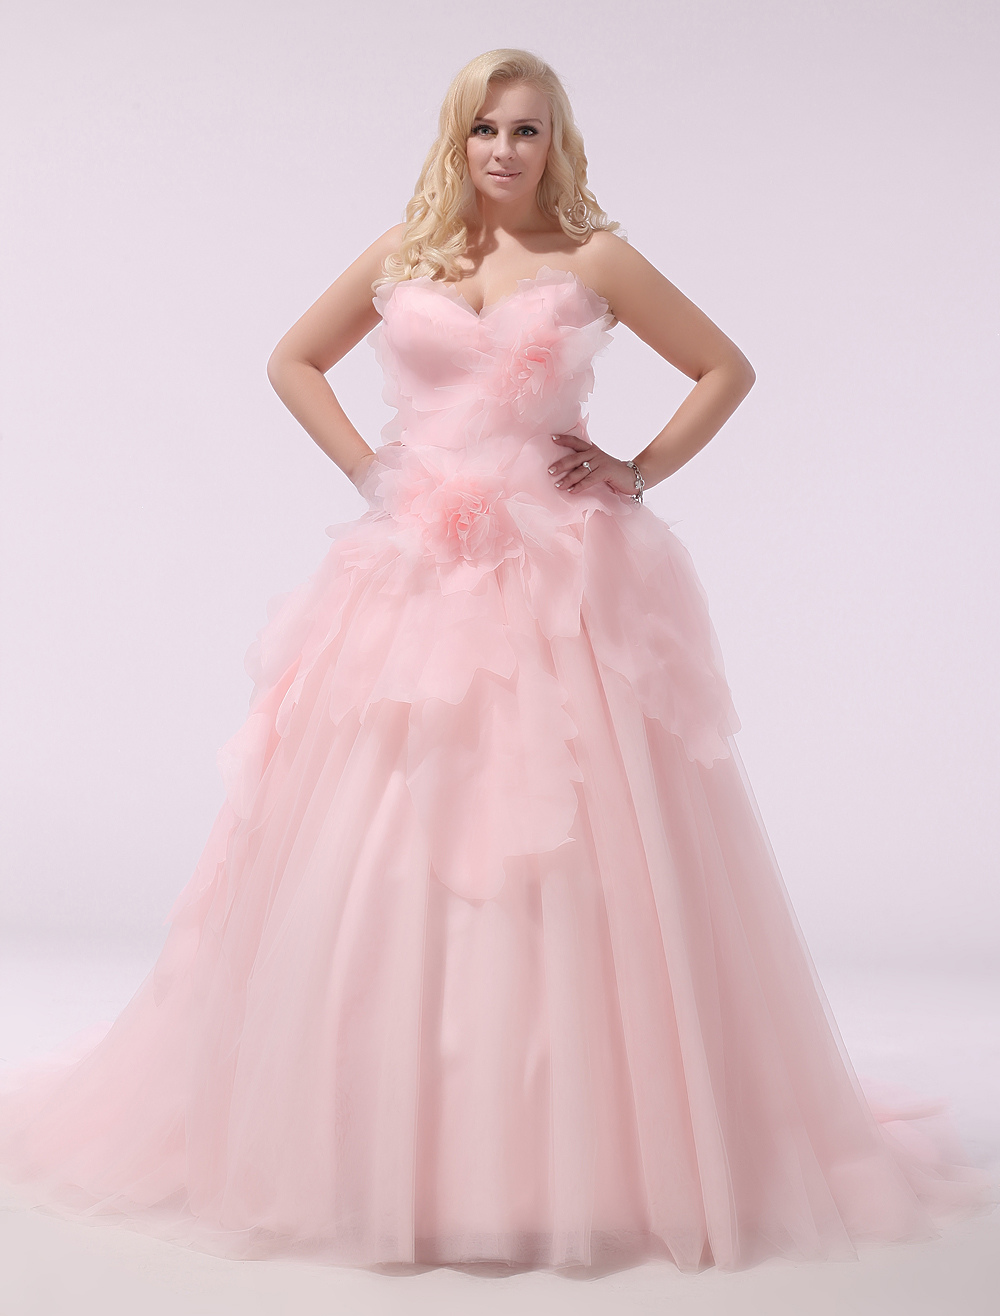 plus size wedding dress pink organza bridal gown sweetheart strapless a line 3d flowers court. Black Bedroom Furniture Sets. Home Design Ideas